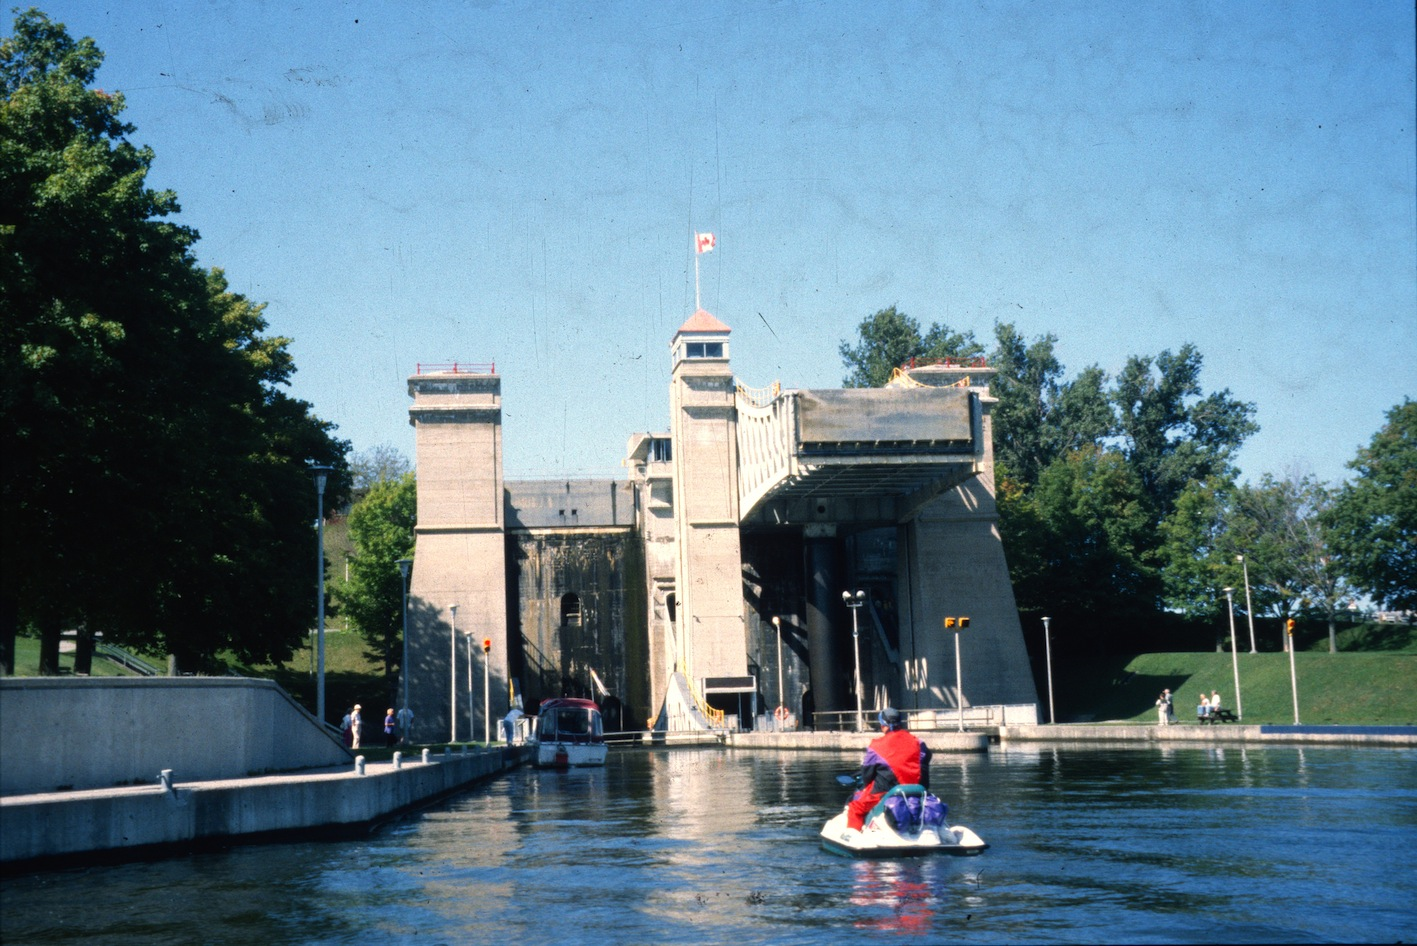 Approaching the famous Peterborough Lift Lock on Trent Severn Waterway Sea Doo Tour